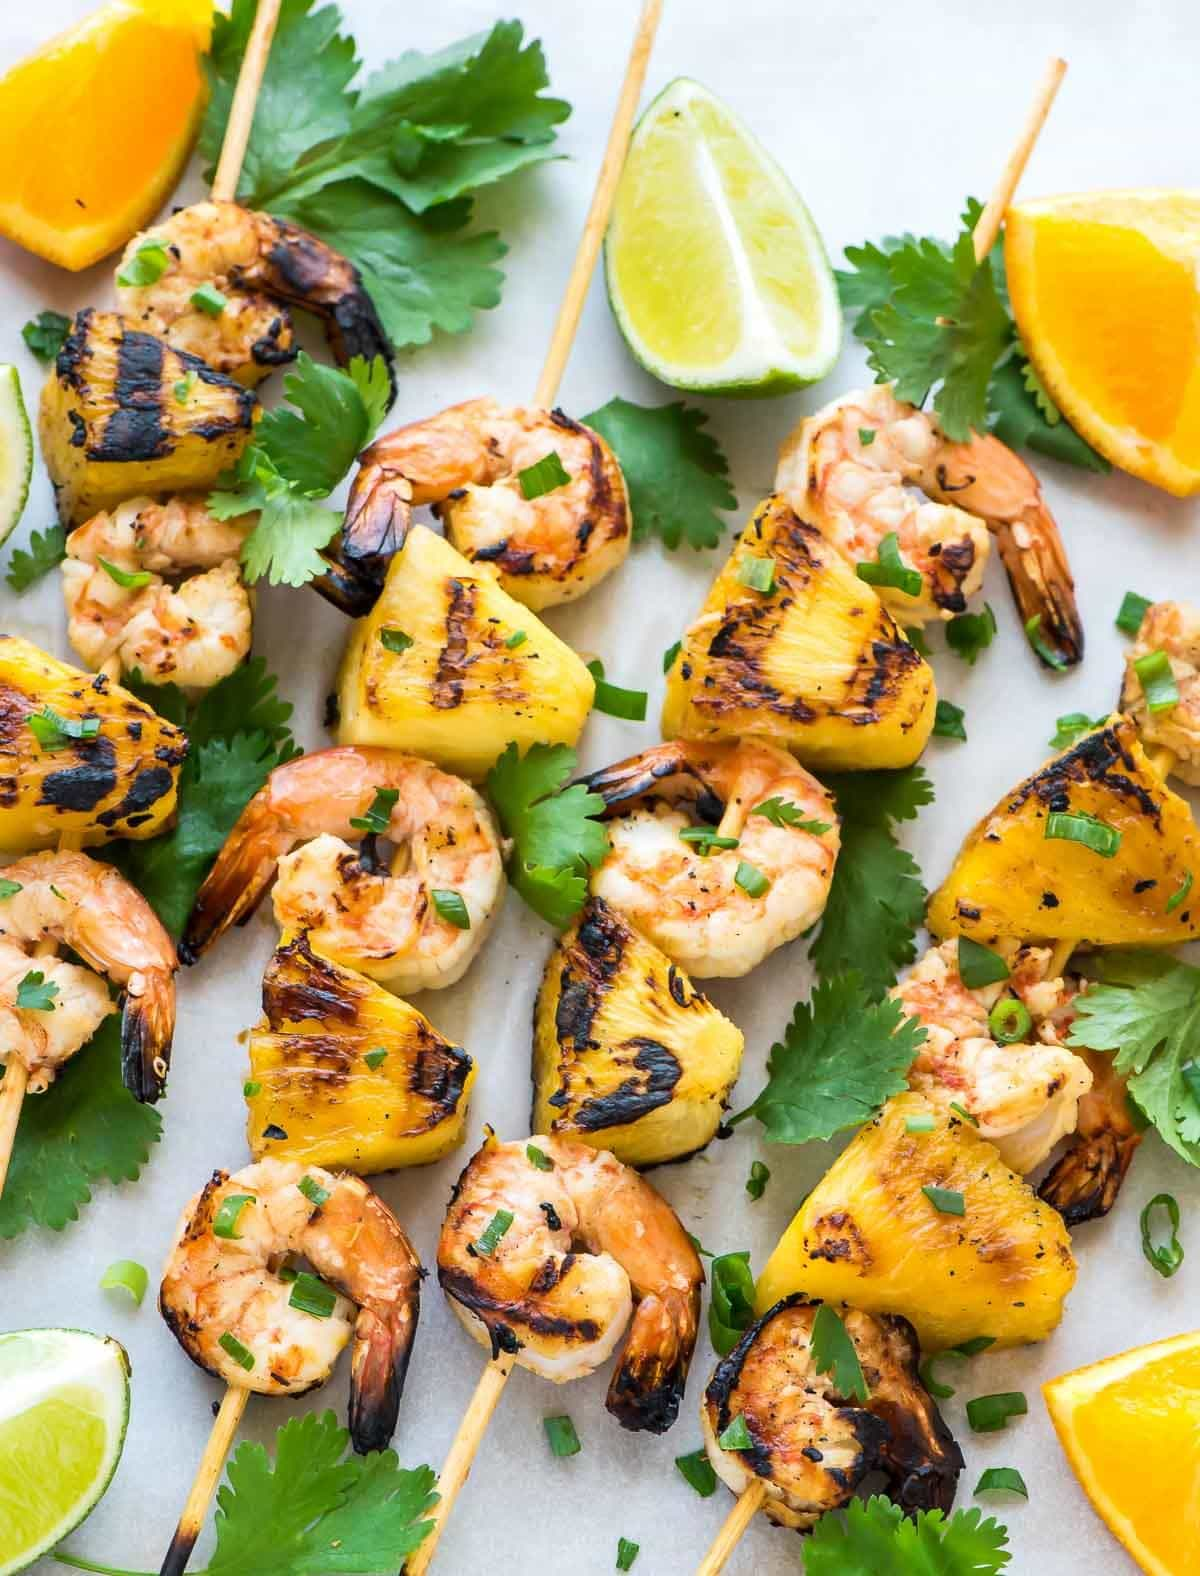 Pineapple Shrimp Kabobs with Pineapple, threaded onto skewers and cooked on the grill or in the stove top.